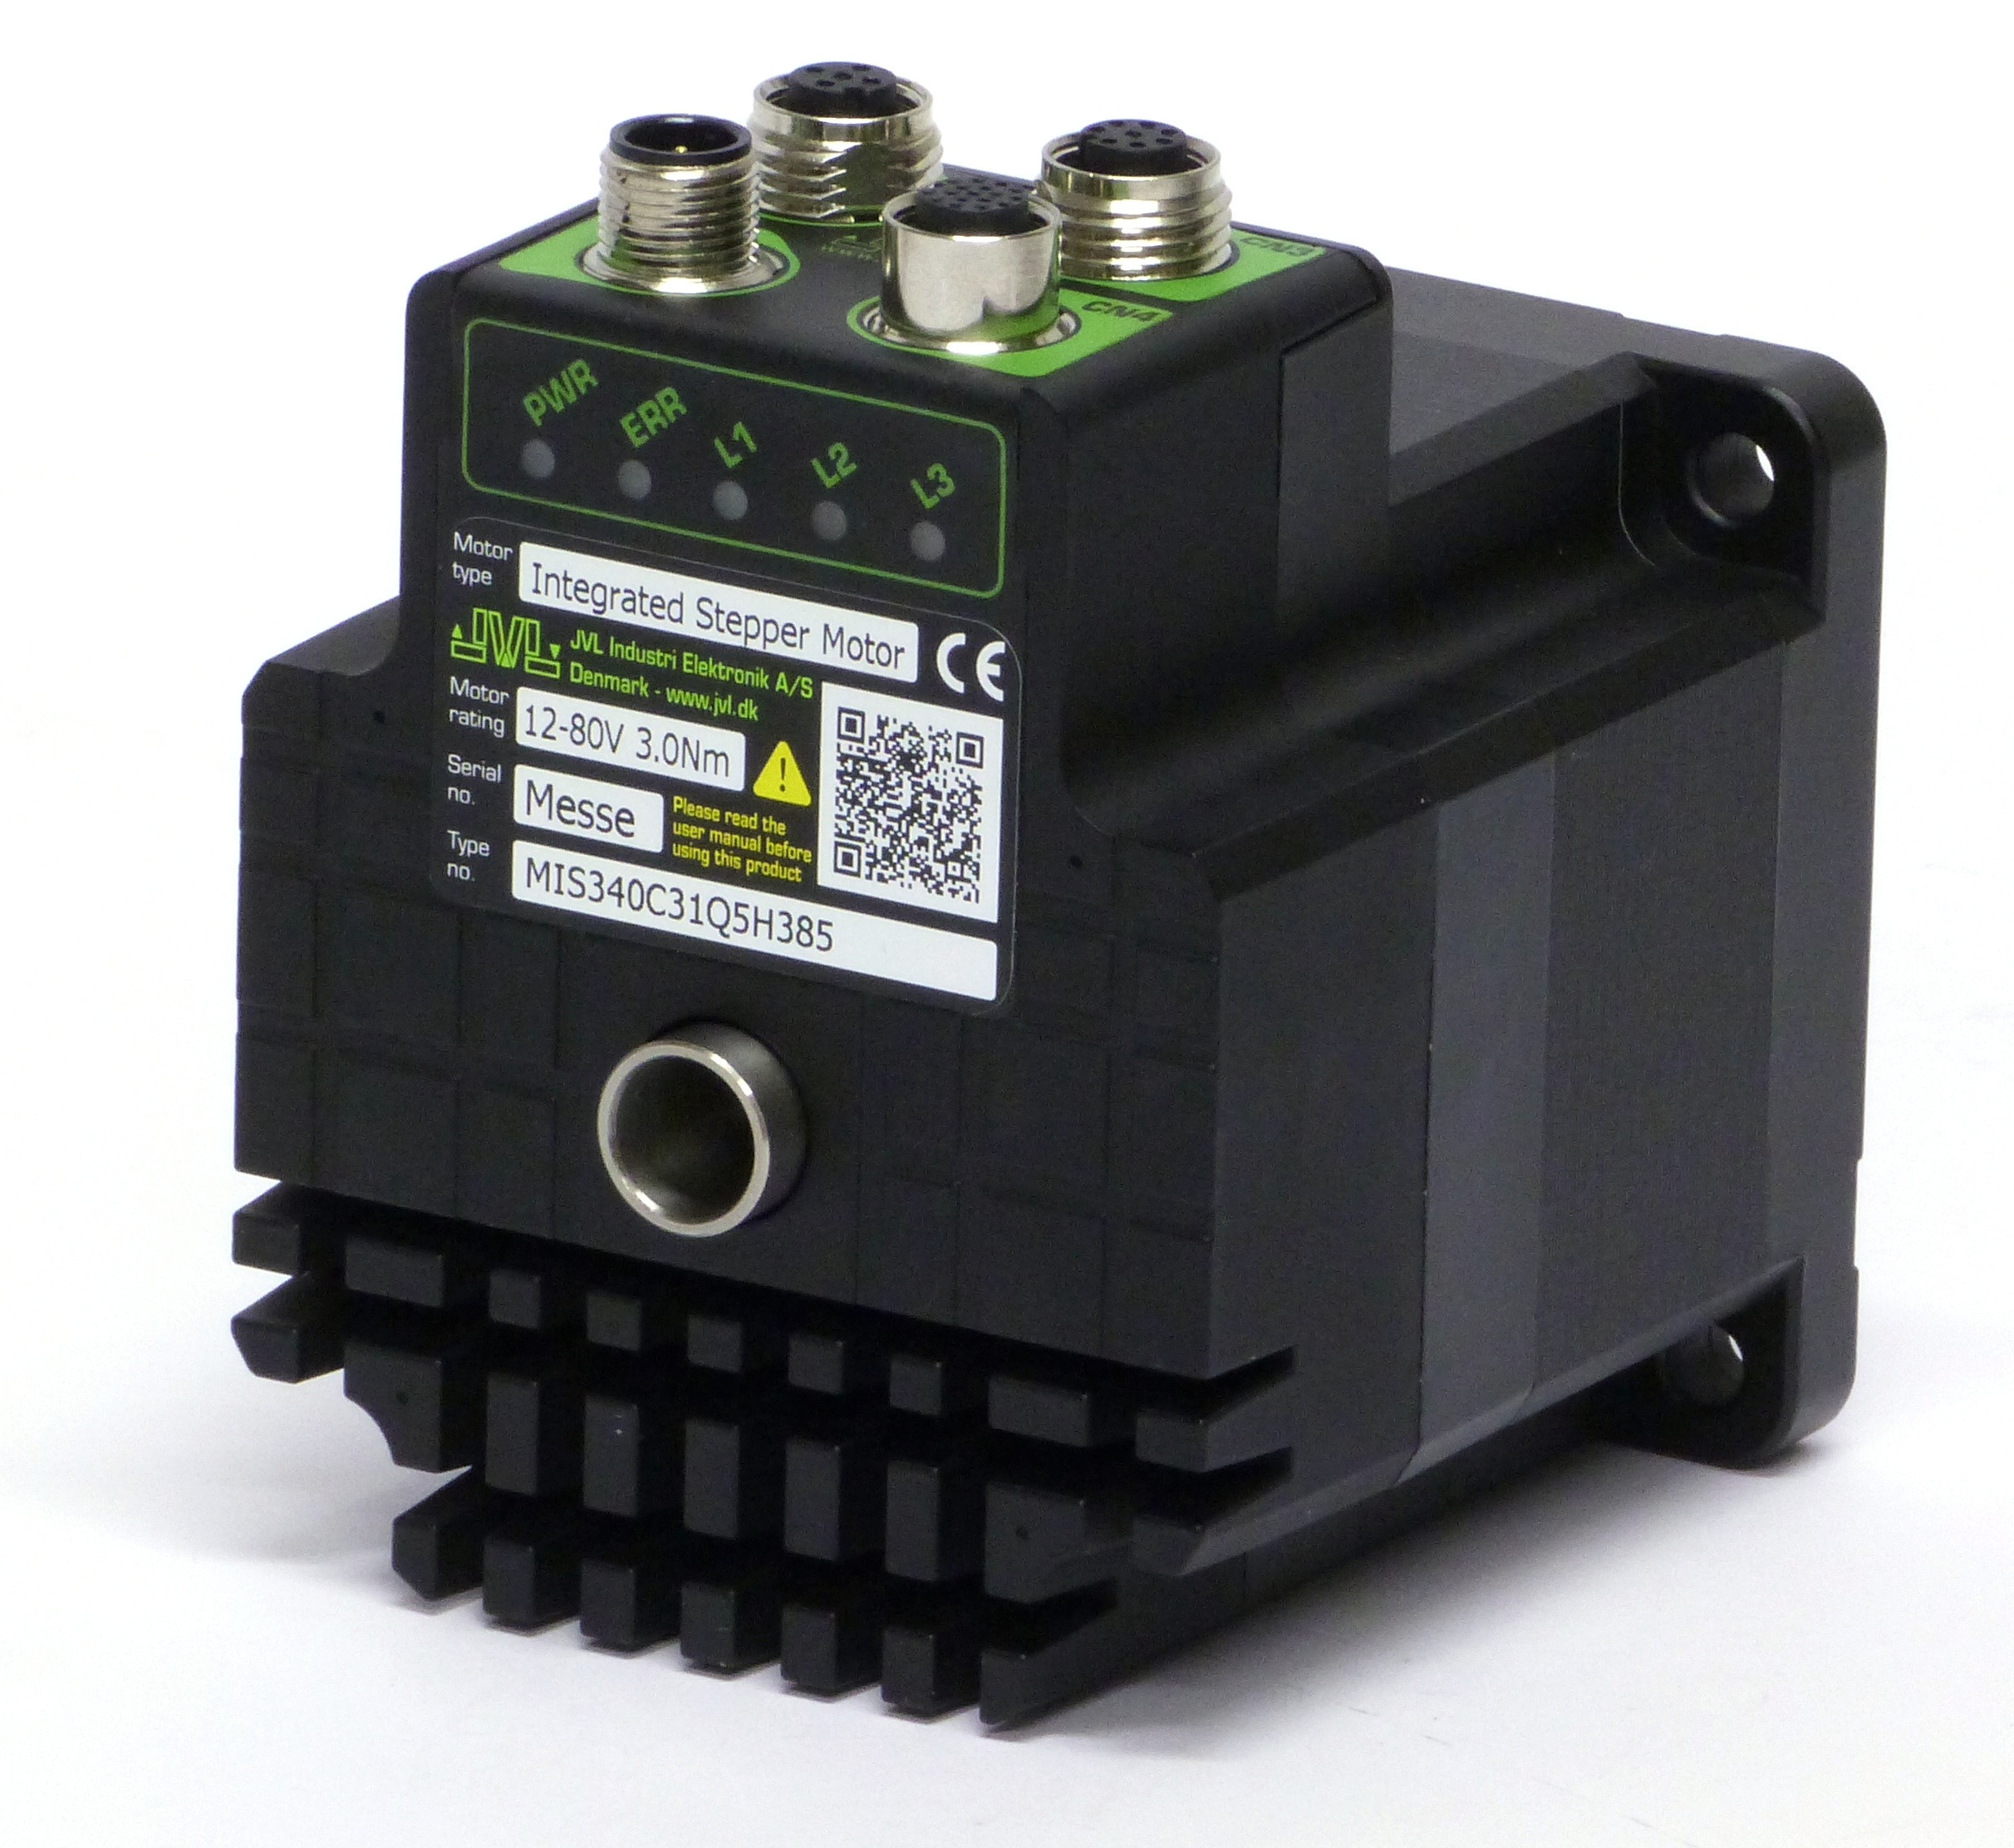 Quickstep Integrated Stepper Motor Series Mis340 Mis34 By Jvl